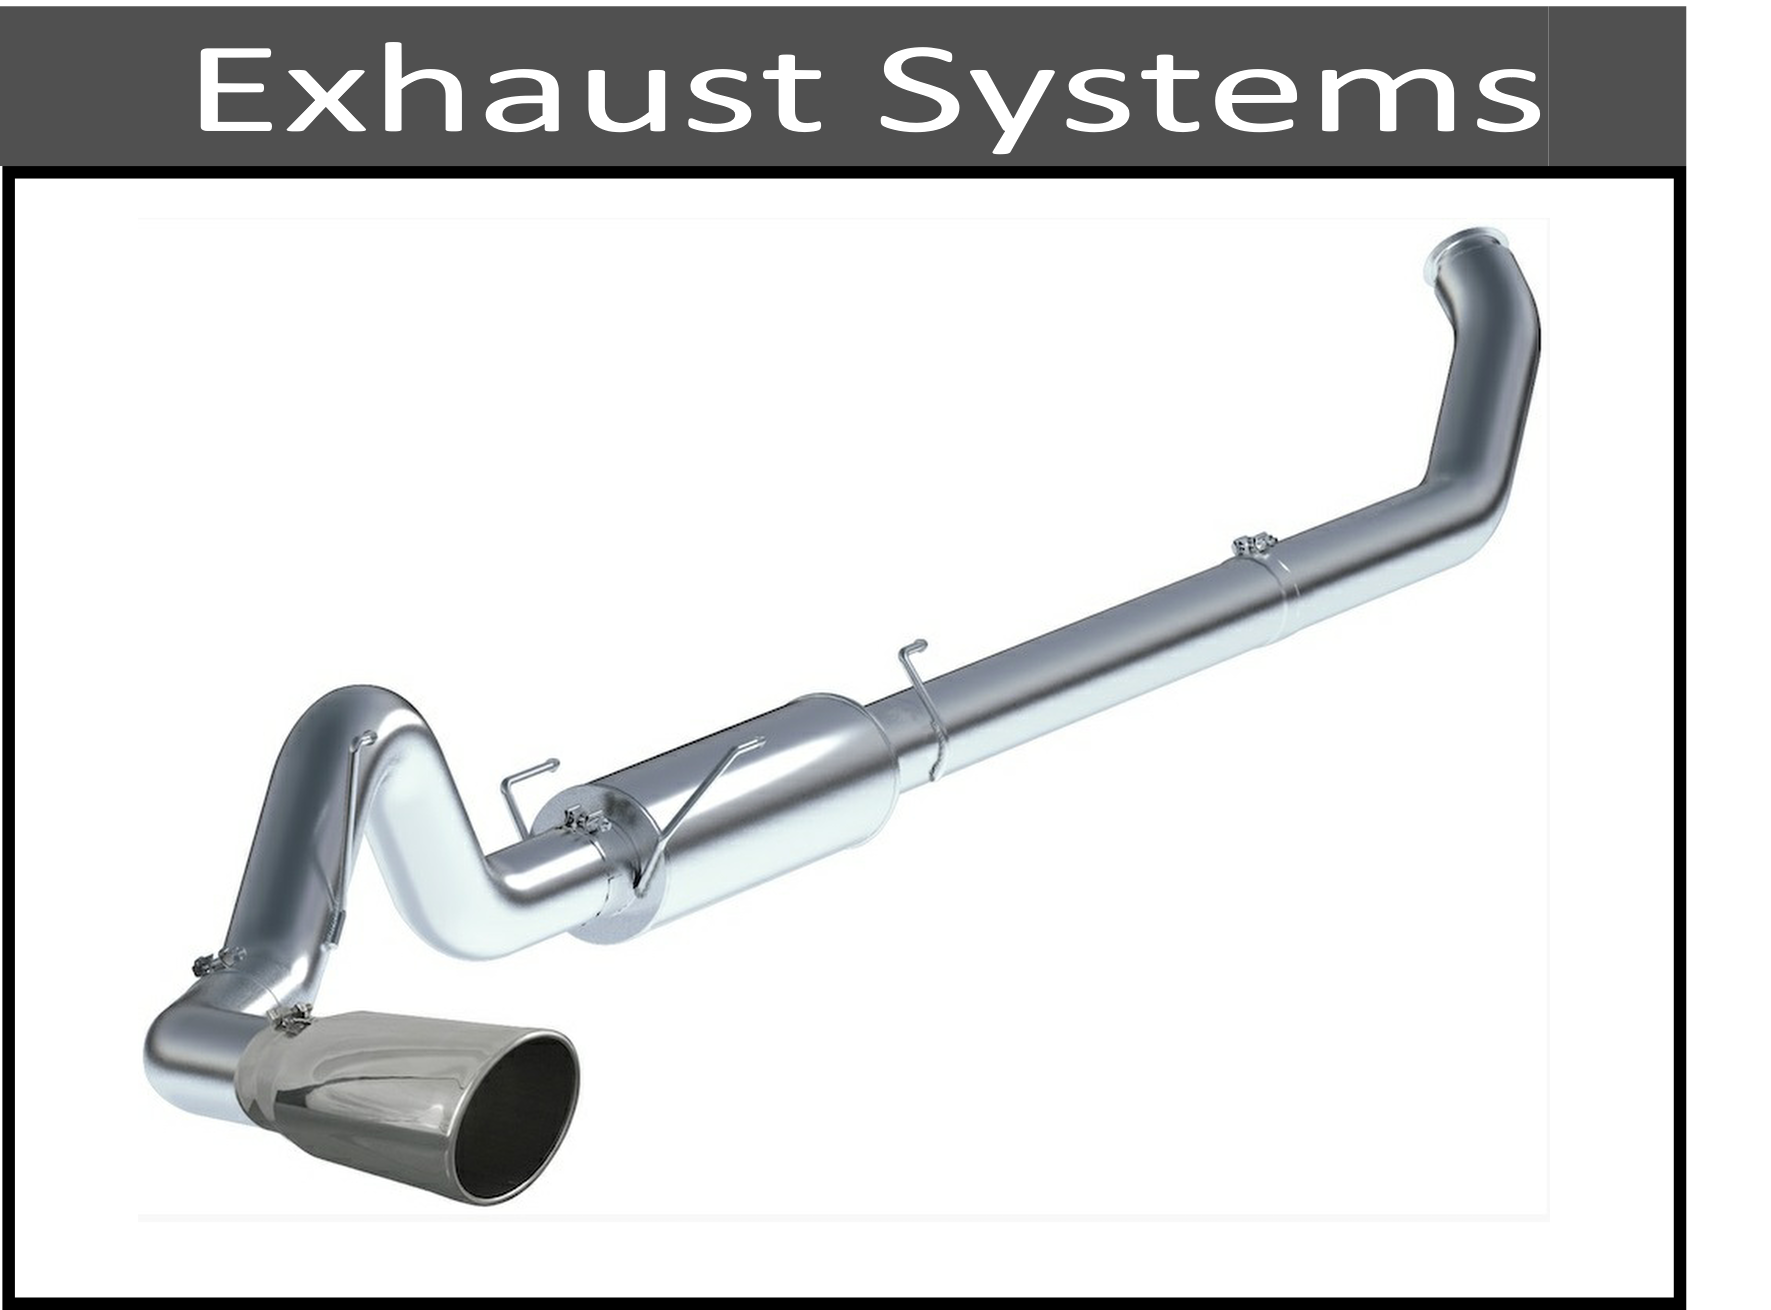 Complete Exhaust Systems